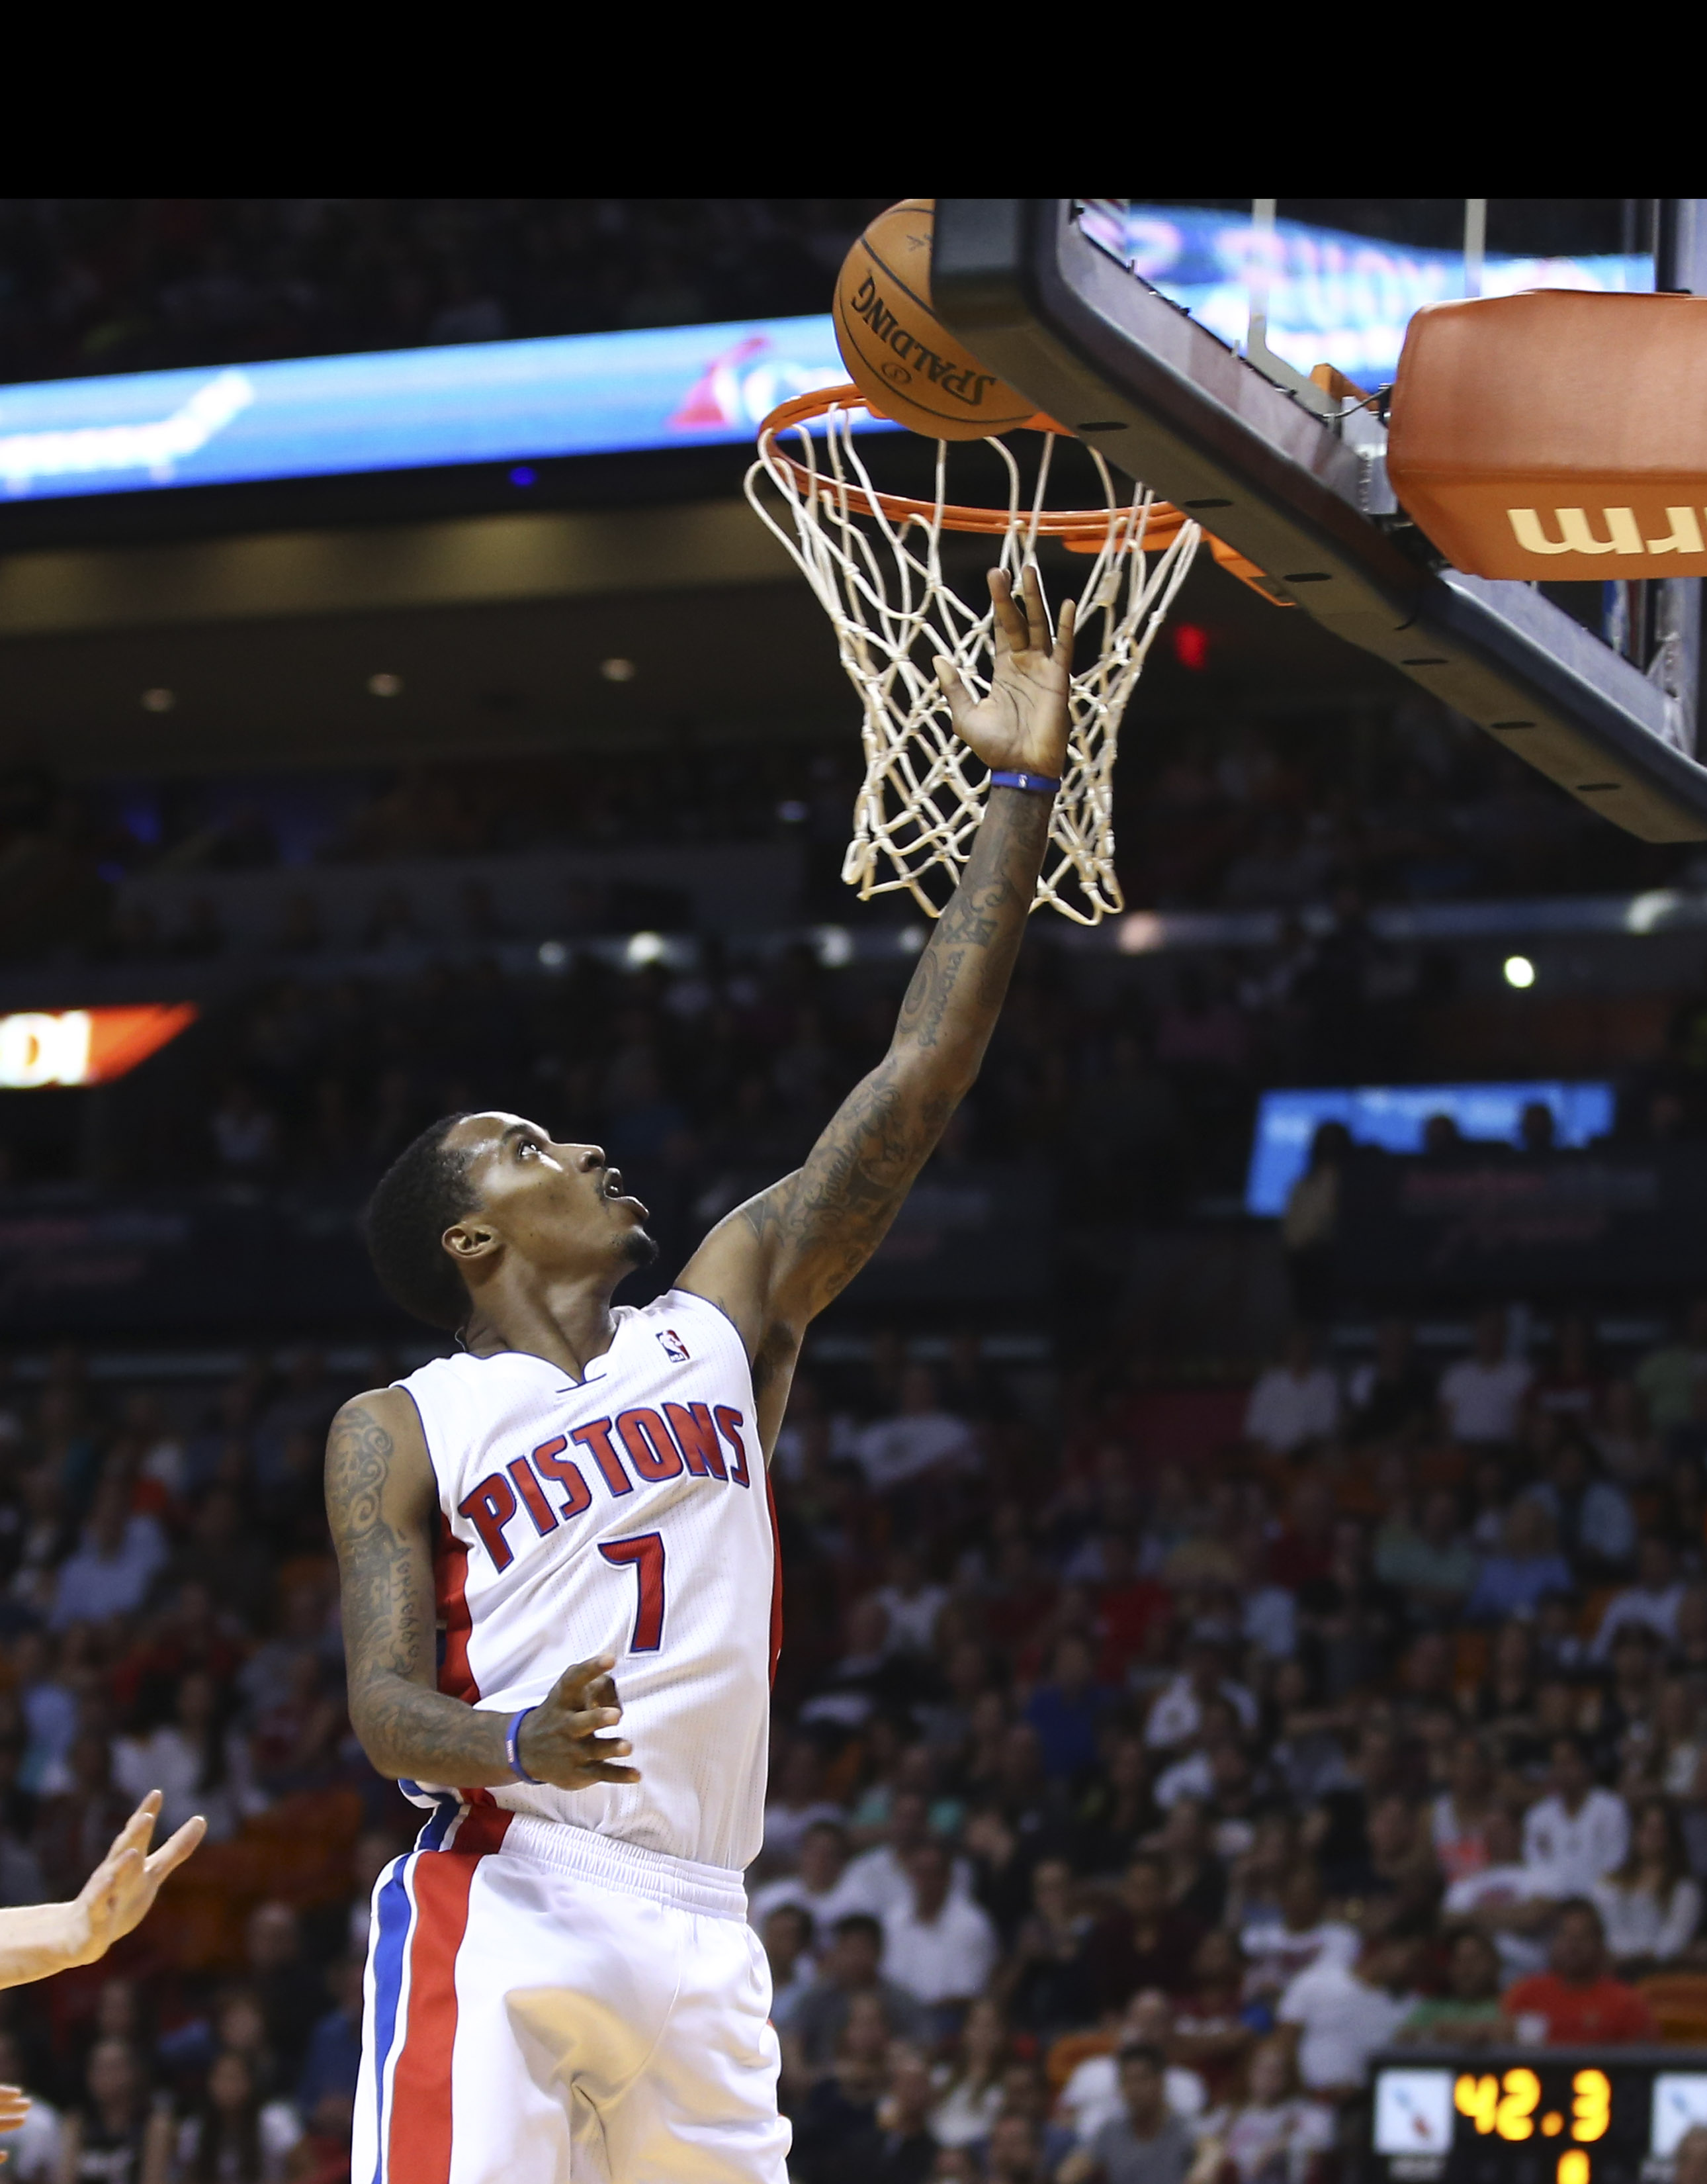 Detroit Pistons' Brandon Jennings scores two points against the Miami Heat during the second half of an NBA basketball game in Miami, Monday, Feb. 3, 2014. The Heat won 102-96